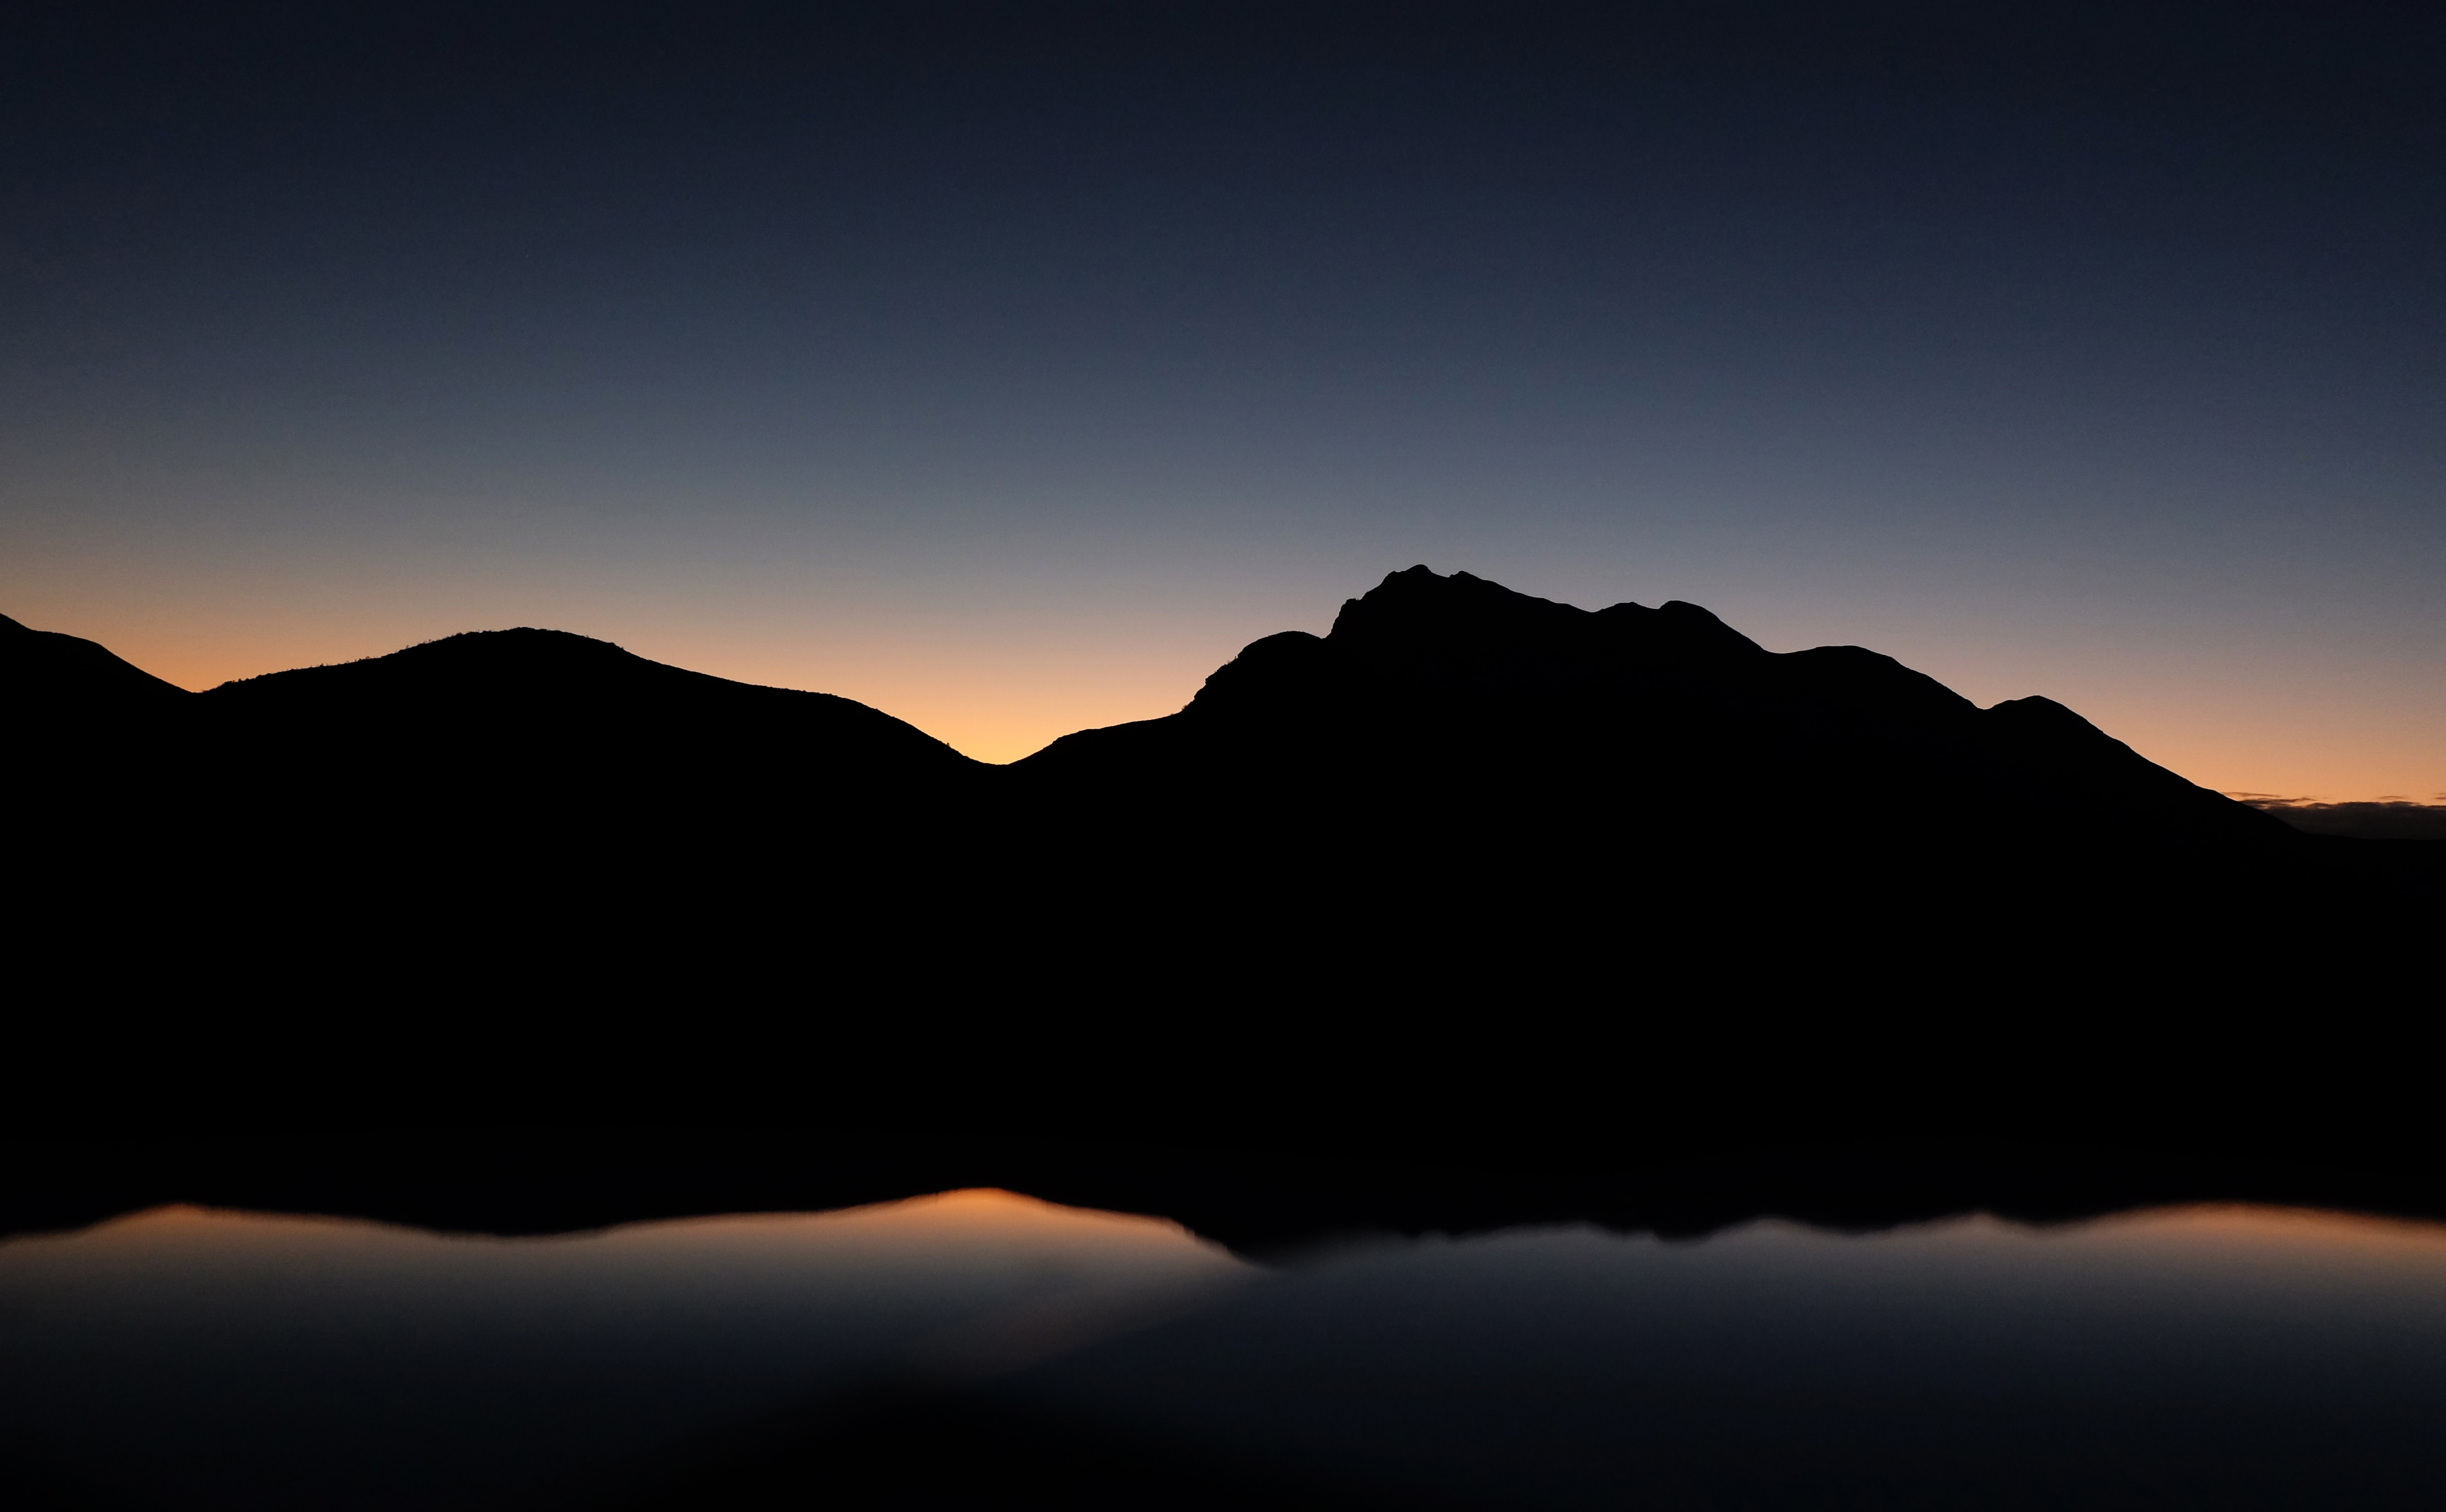 A silhouette of New York, Texas mountains during a dark sunset being reflected on still waters